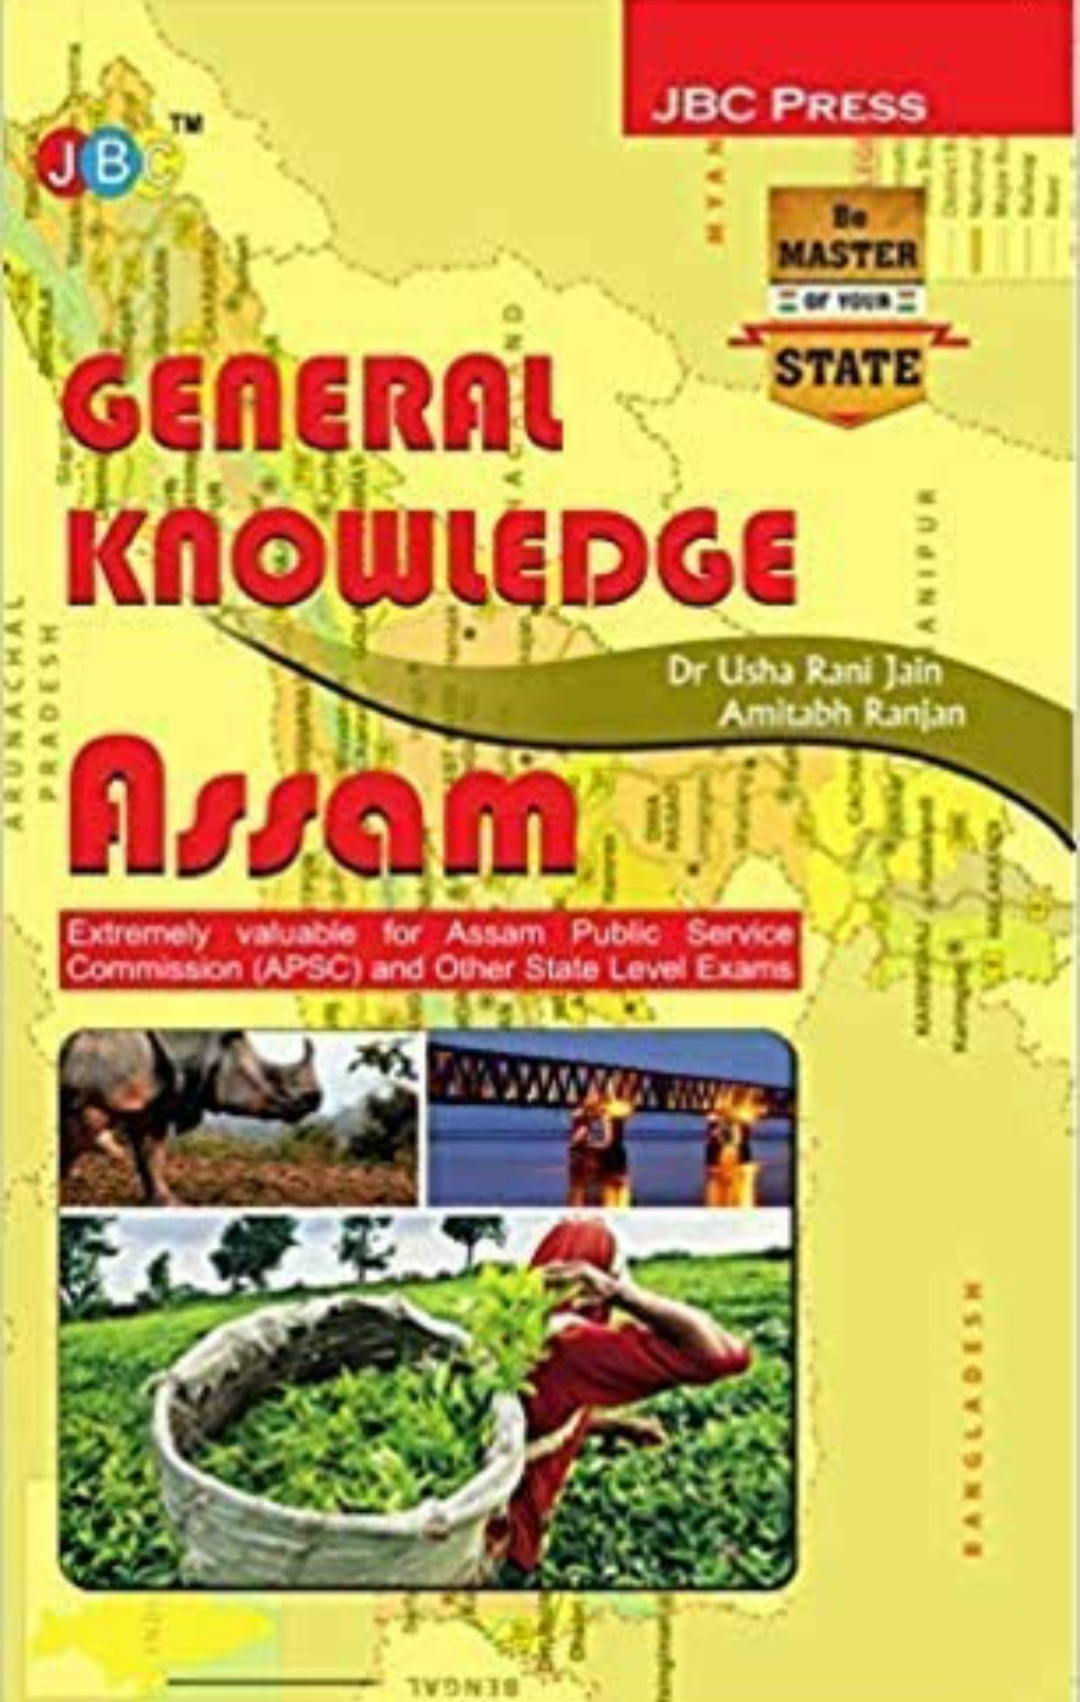 General Knowledge Assam:- Public Service Commission (Apsc) And Other State Level Exams